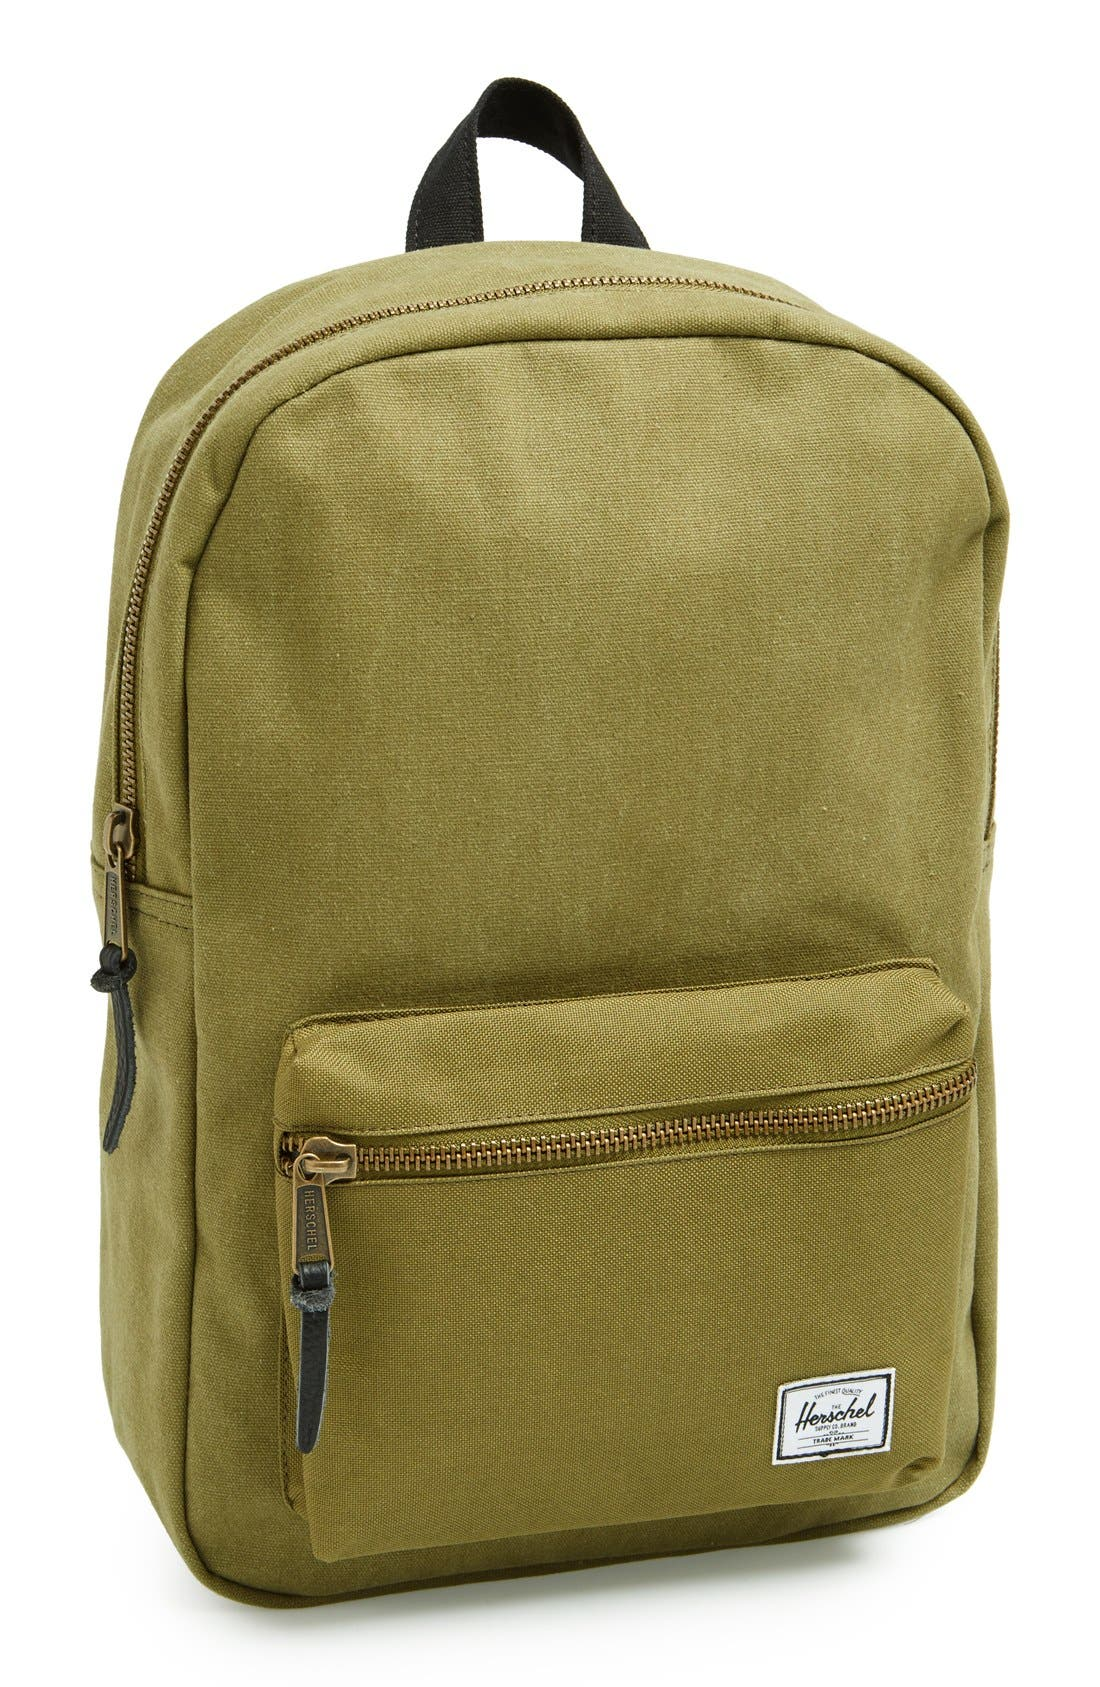 Alternate Image 1 Selected - Herschel Supply Co. 'Settlement Mid-Volume' Canvas Laptop Backpack (13 Inch)